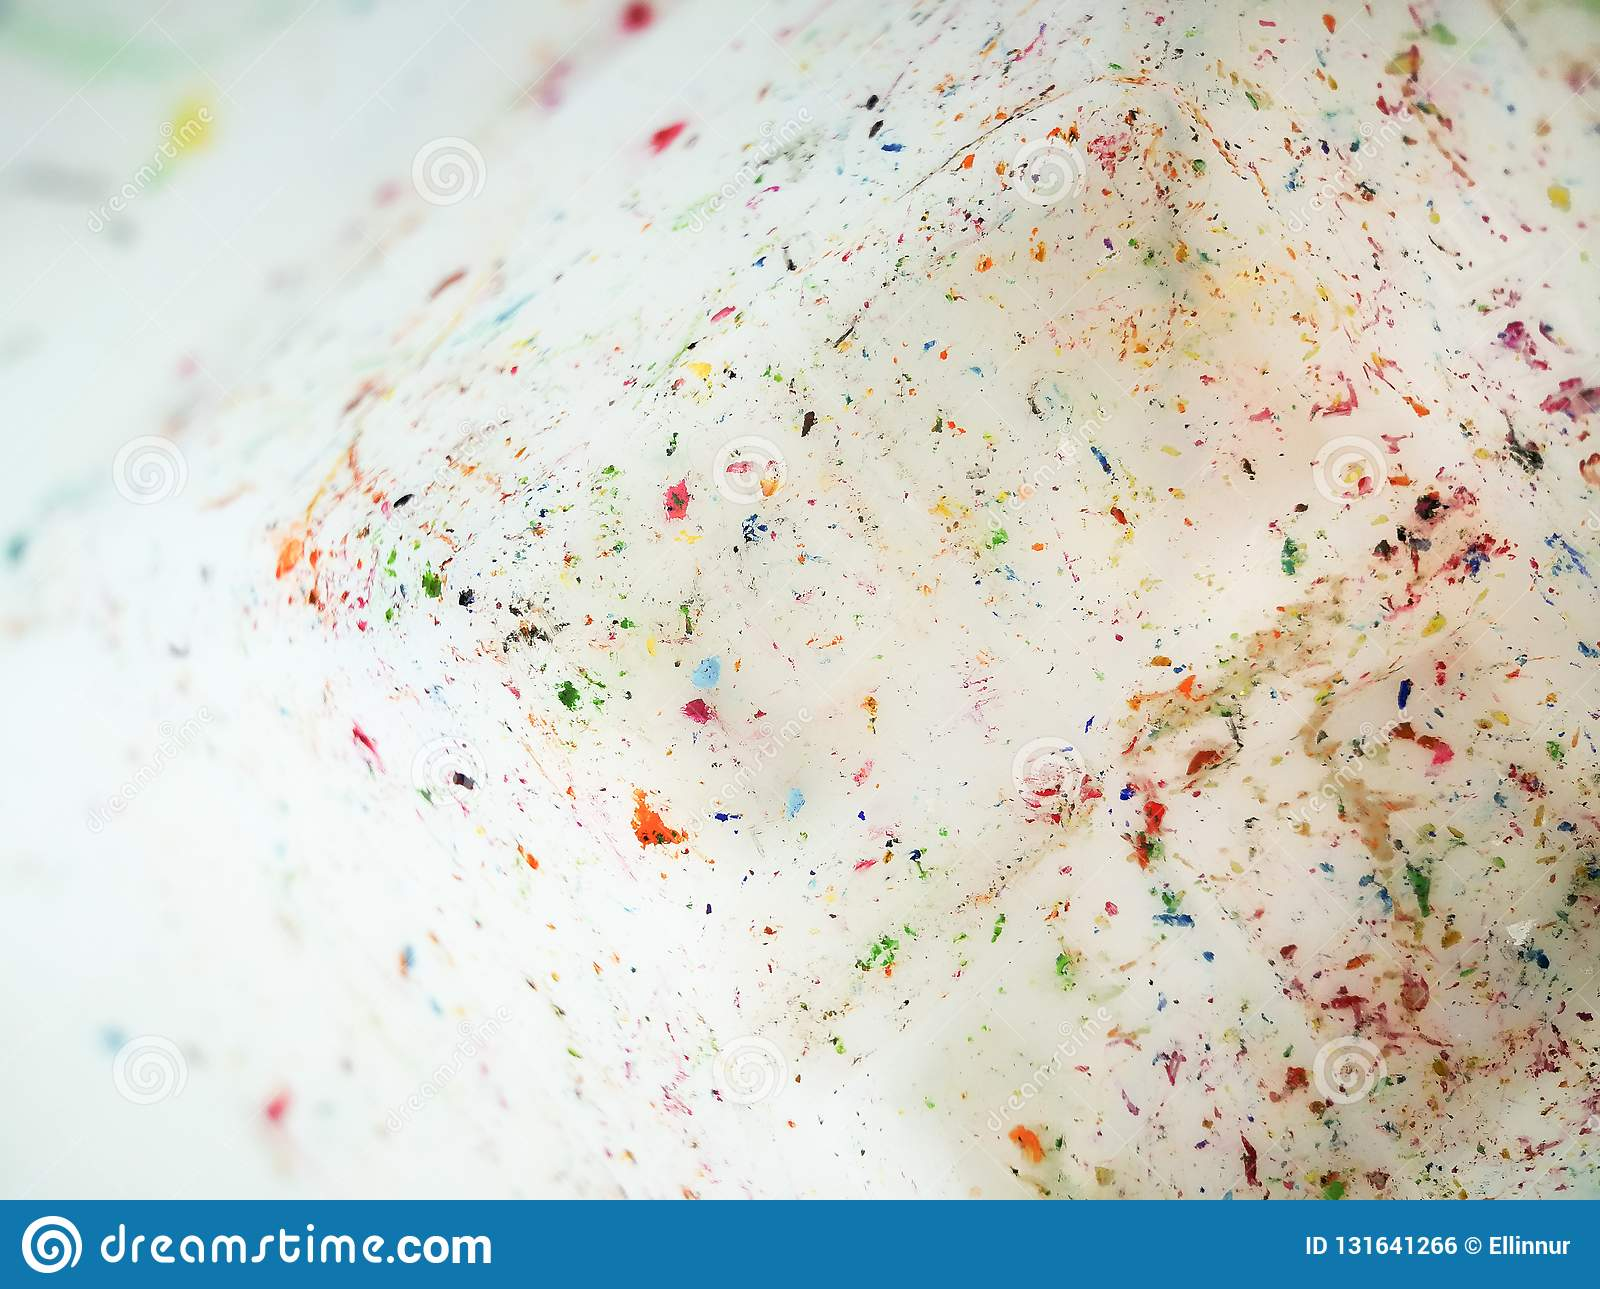 Colourful stains on a white background.